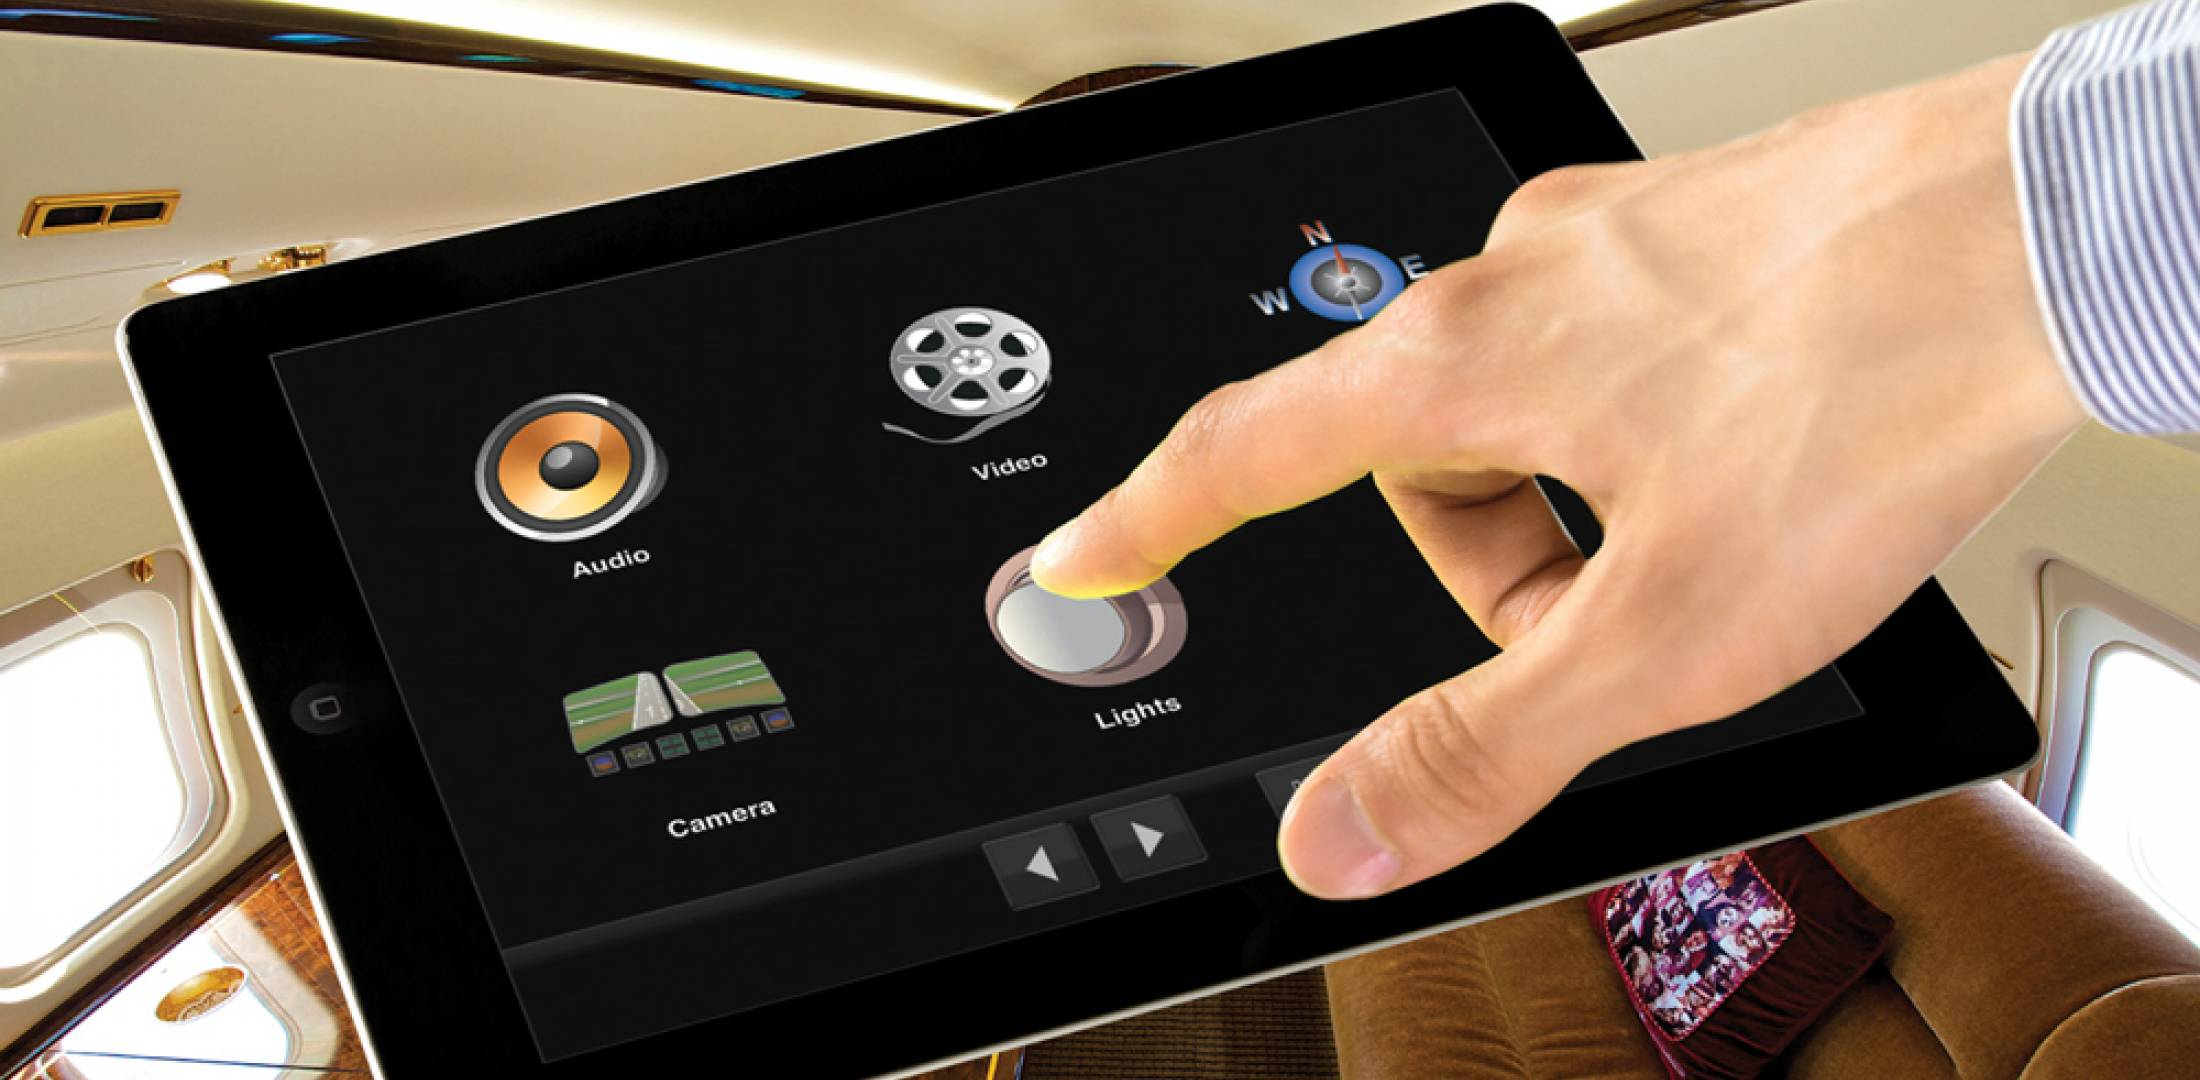 Flight Display's iPad app puts the cabin management system at a passenger's fingertips, displaying moving maps, streaming video and even an external view of a takeoff.